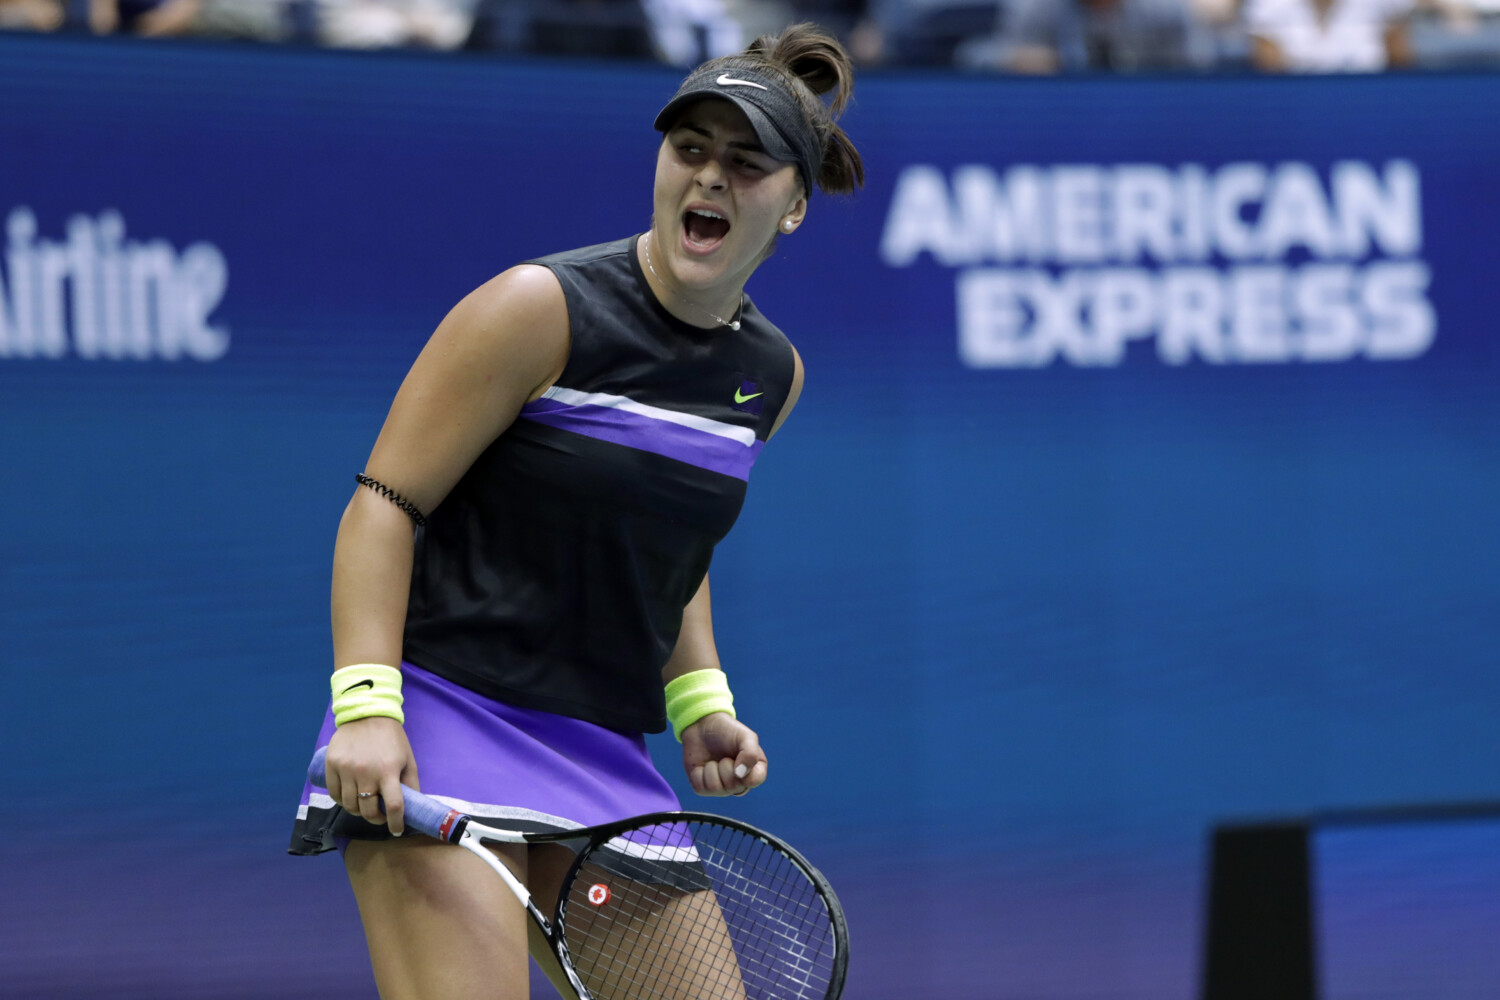 Canada's Bianca Andreescu defeats Serena Williams in stunning US Open final